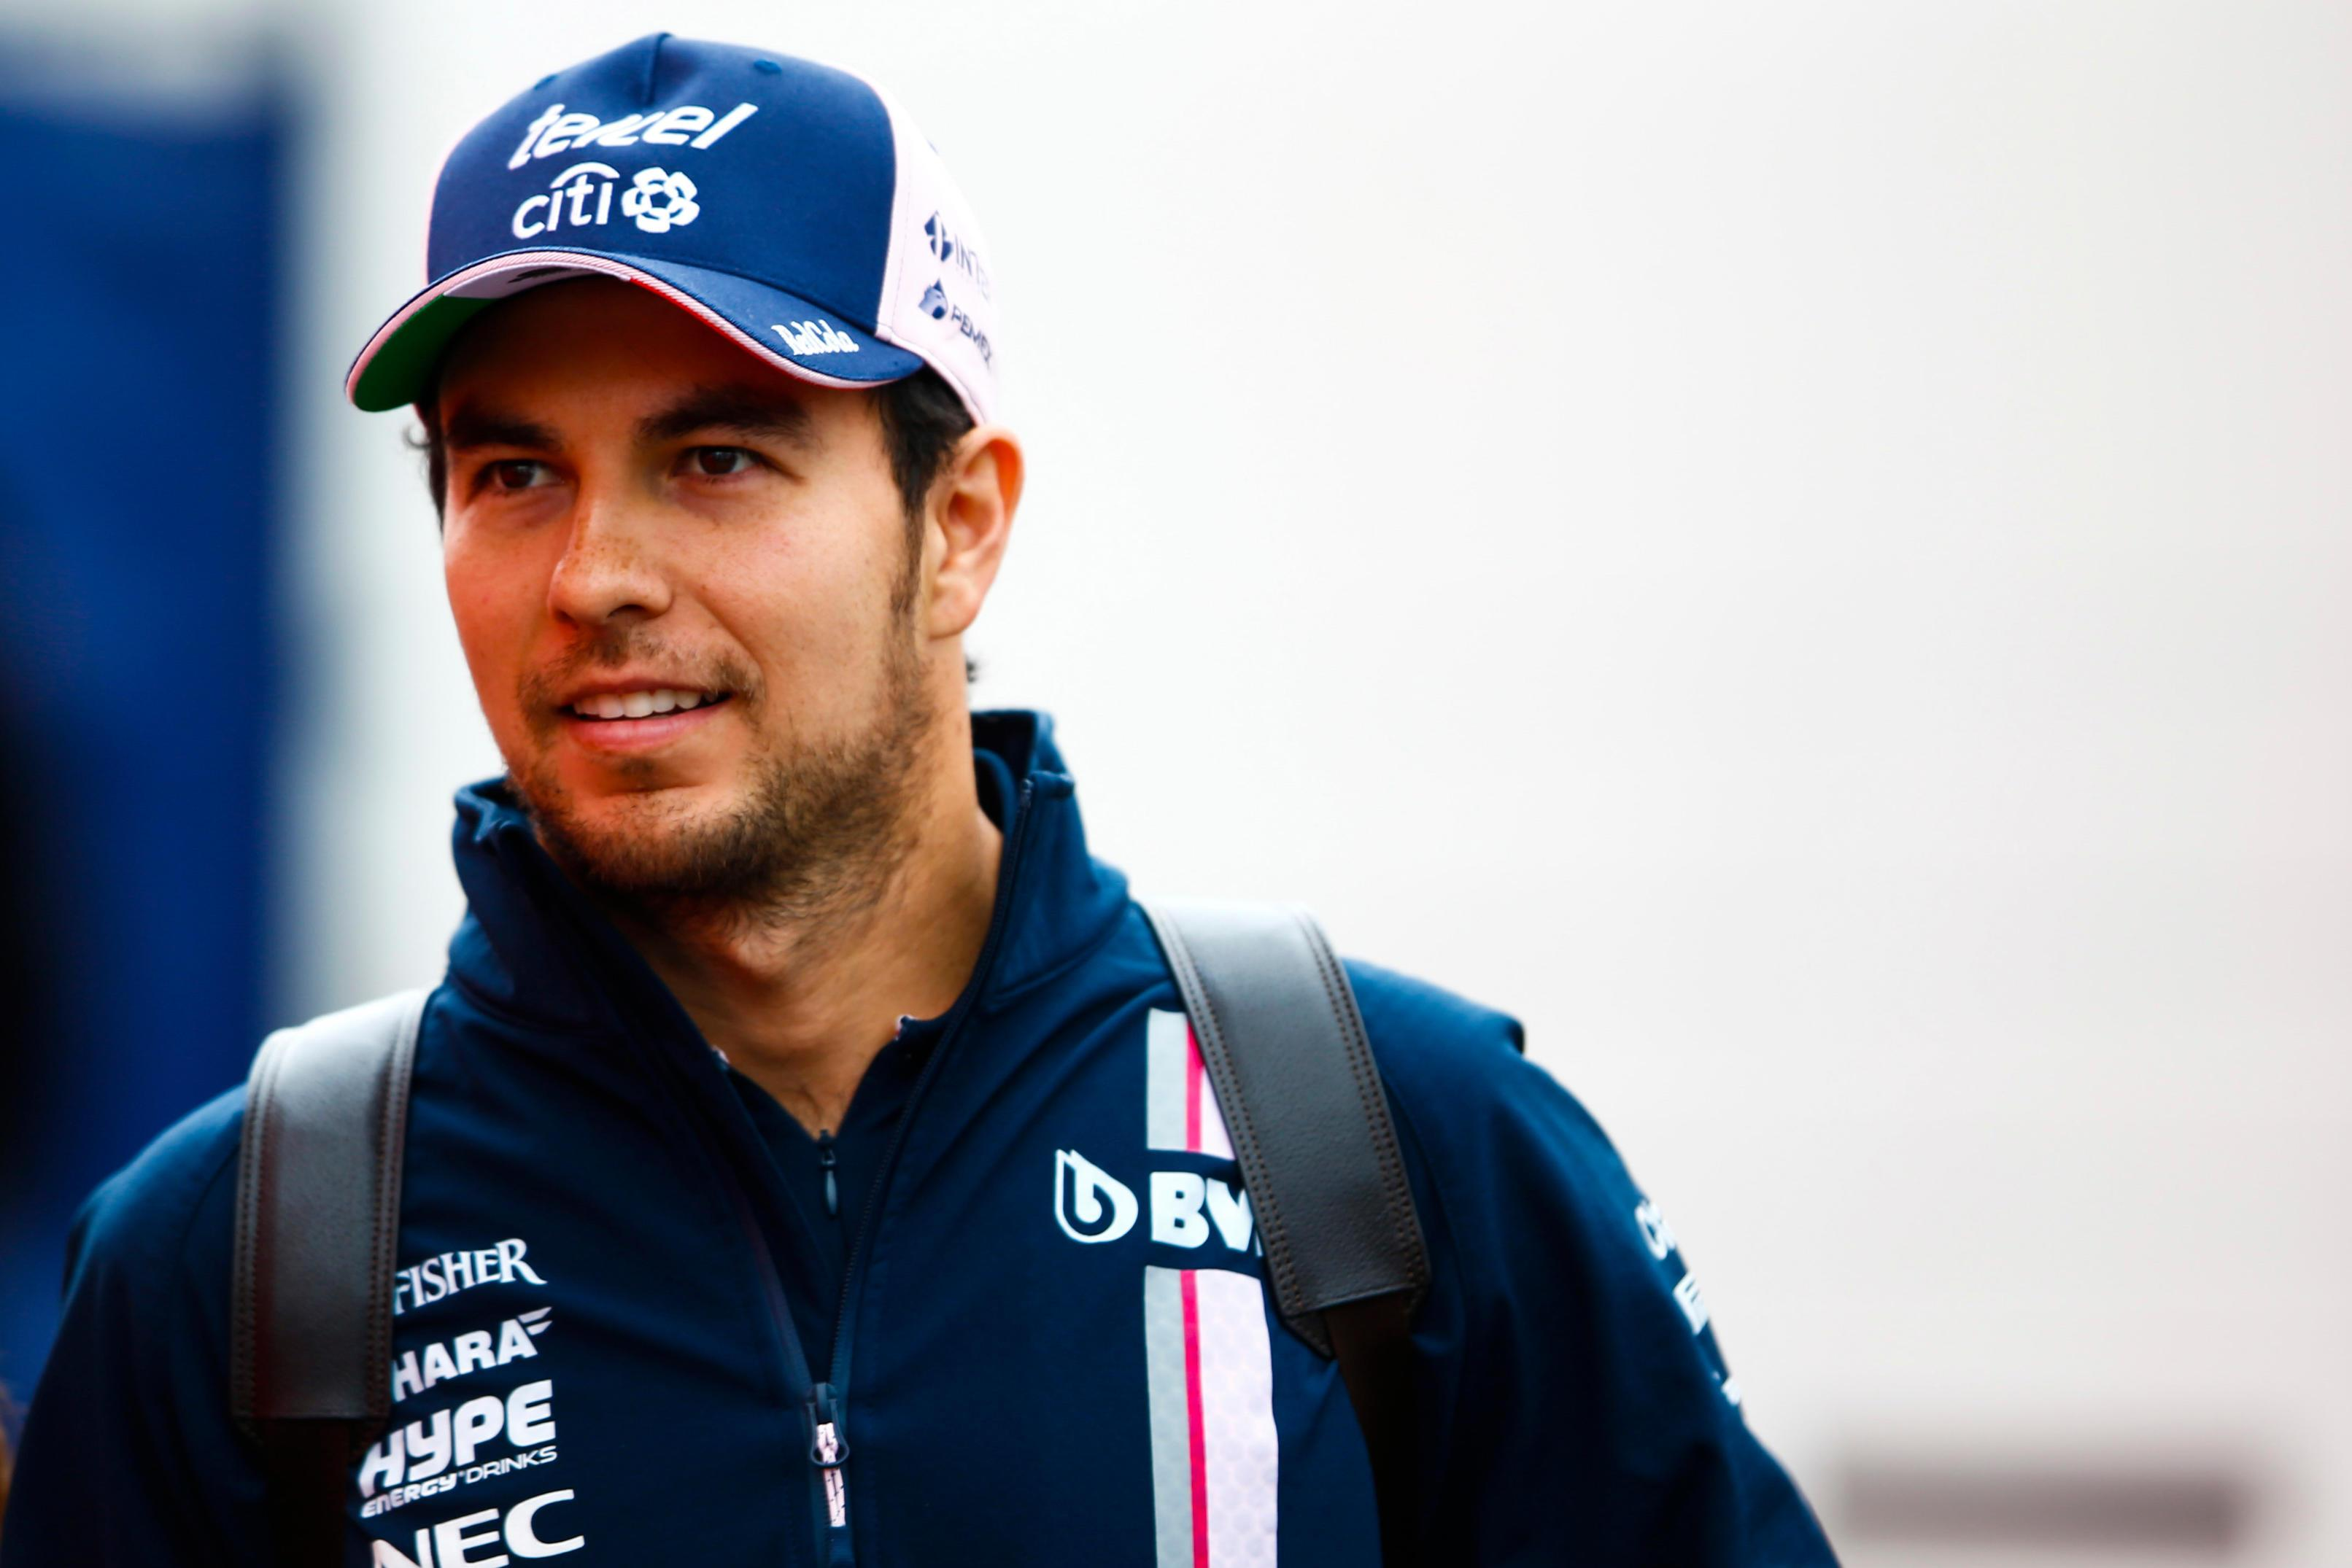 The Mexican is hopeful of a future with Force India